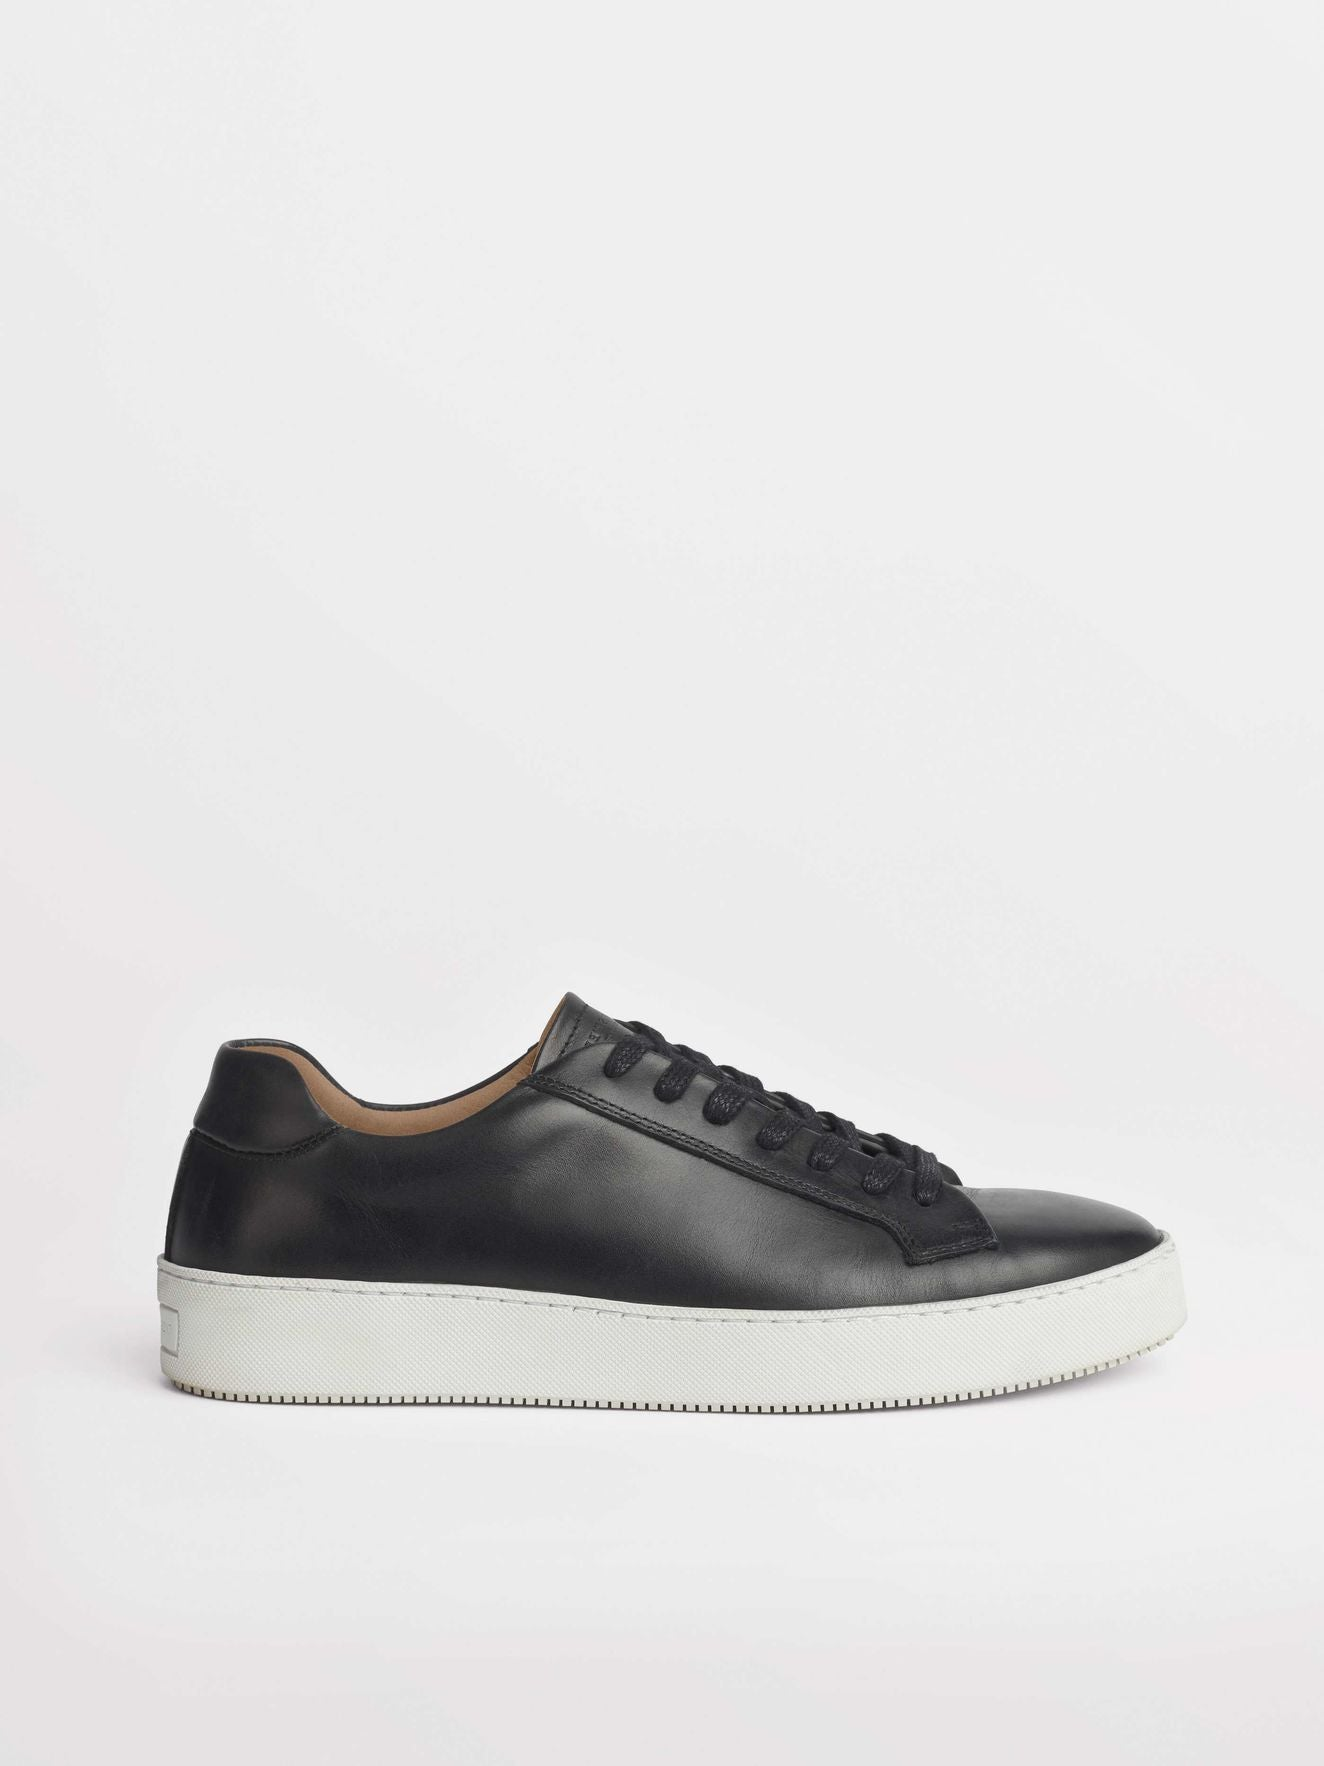 Tiger Of Sweden Salas Sneakers Black - Mojo Independent Store